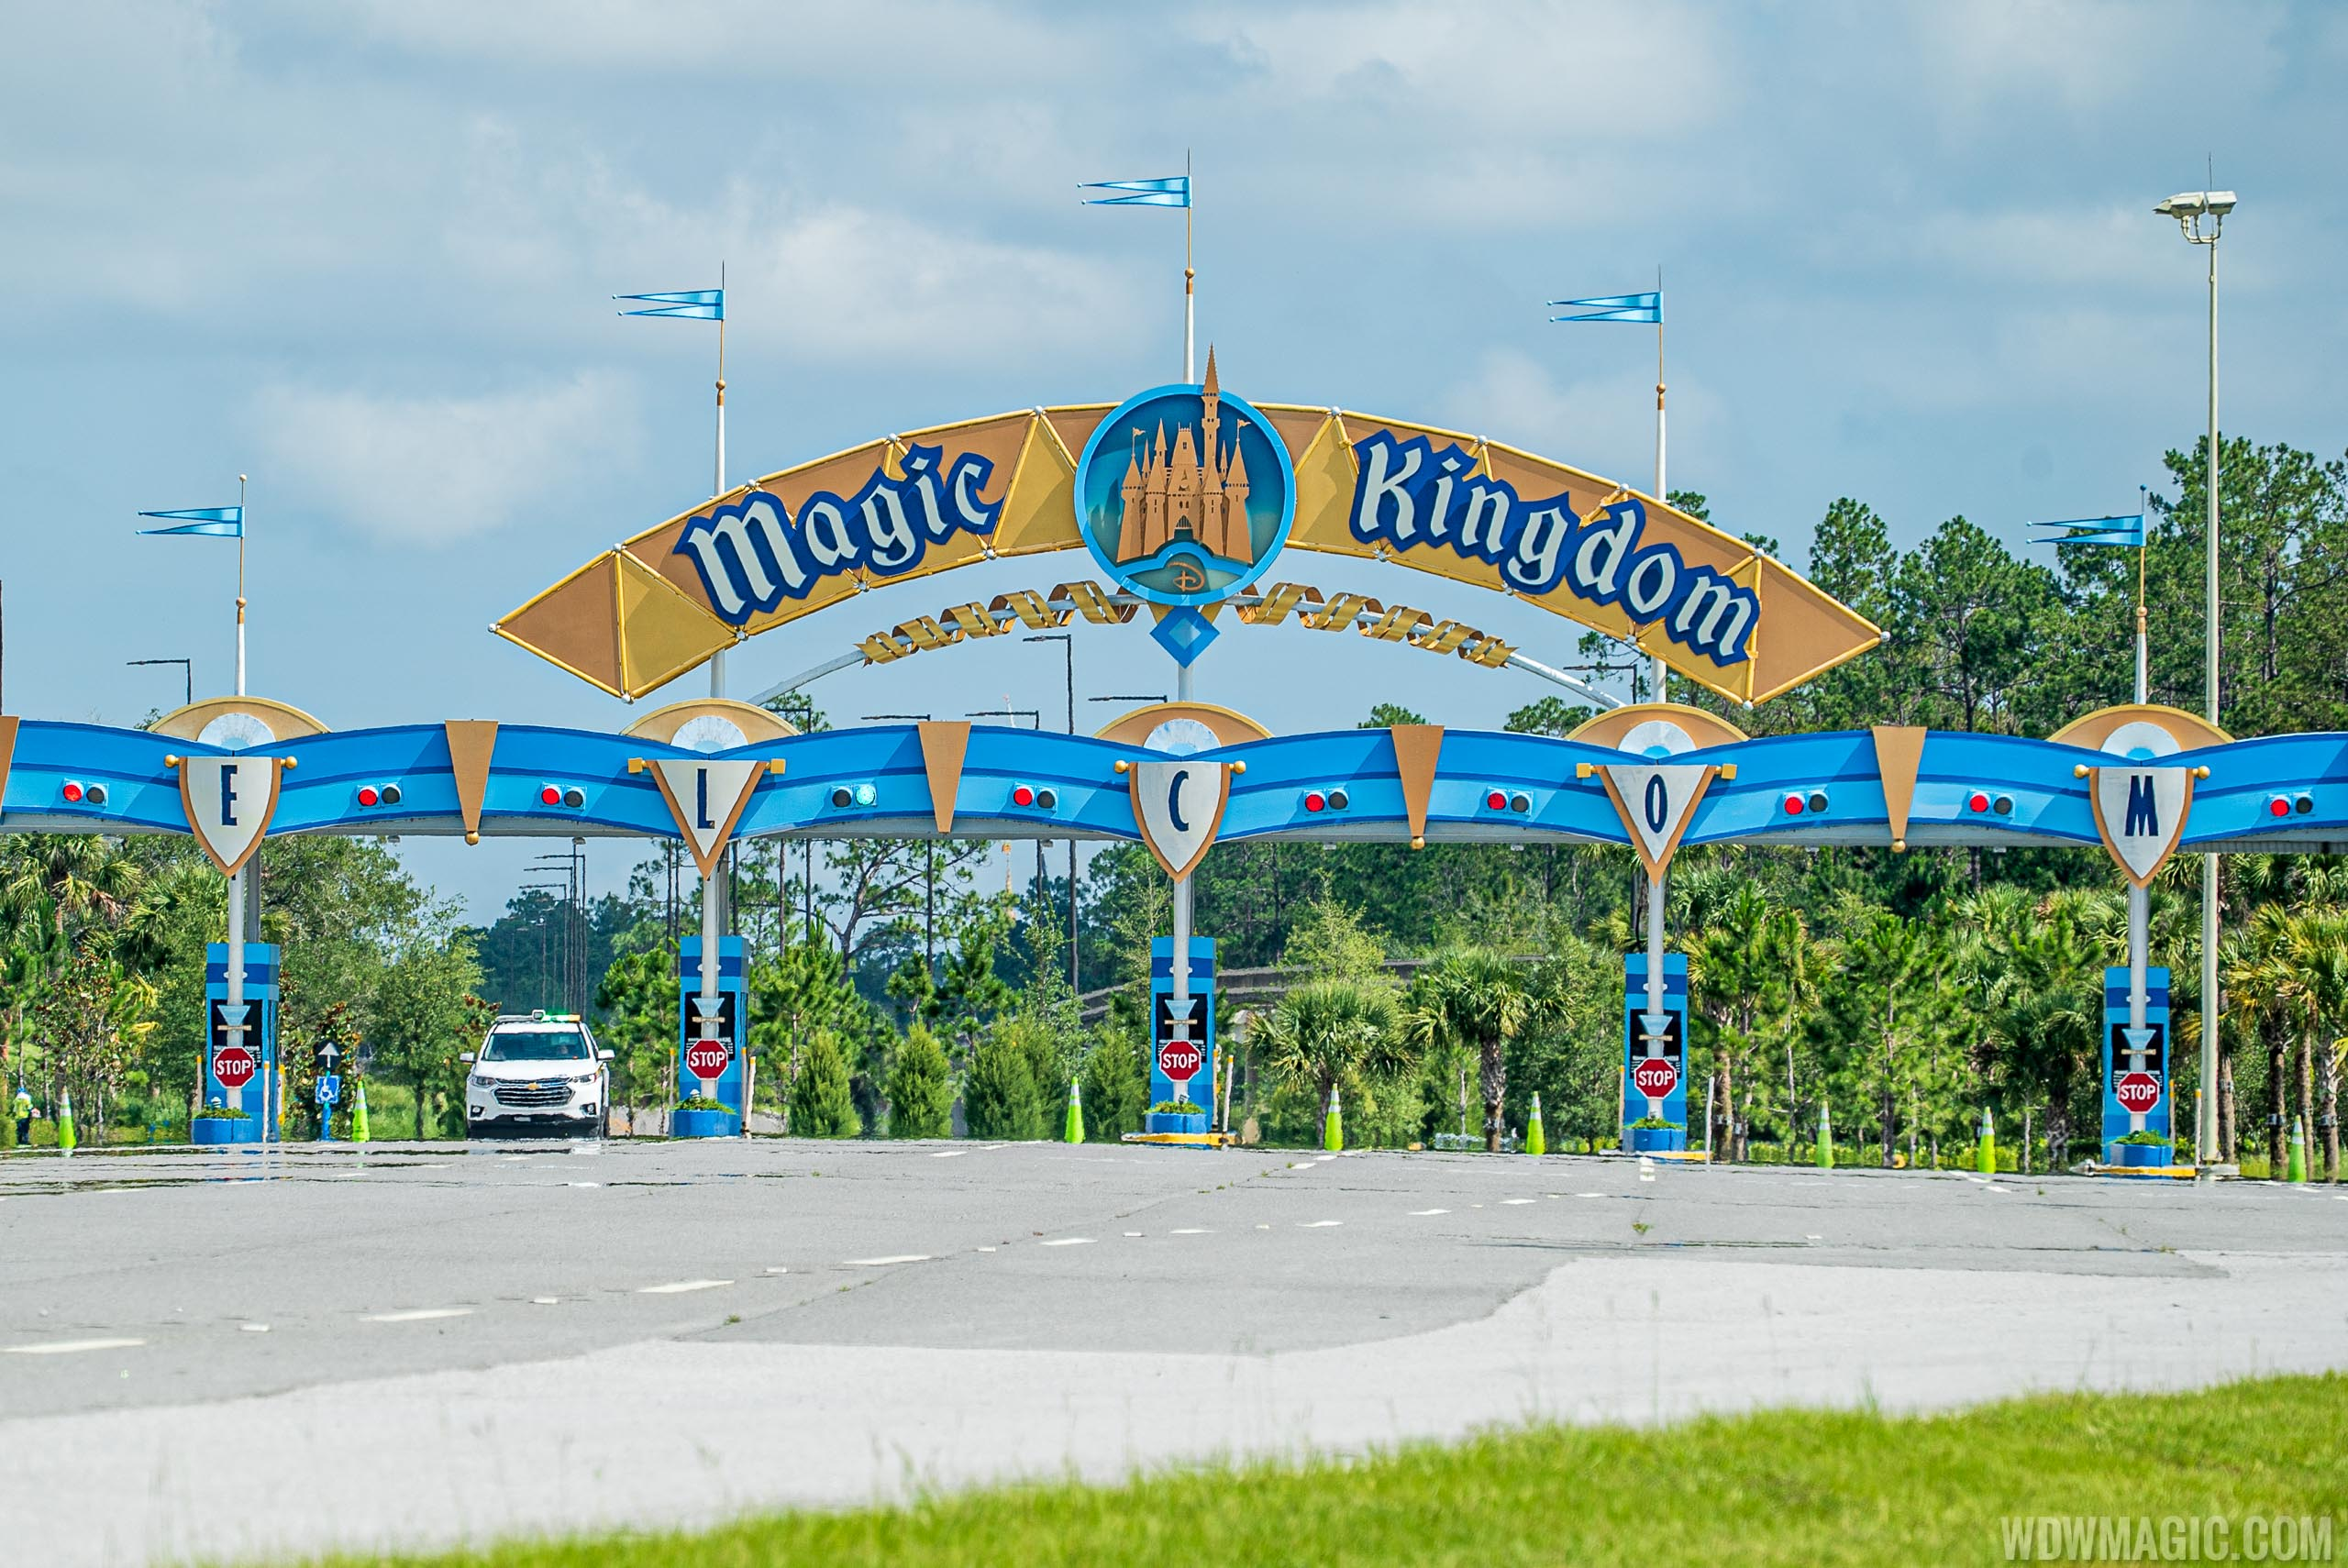 Walt Disney World has not seen international guests since the mid-March shutdown due to COVID-19